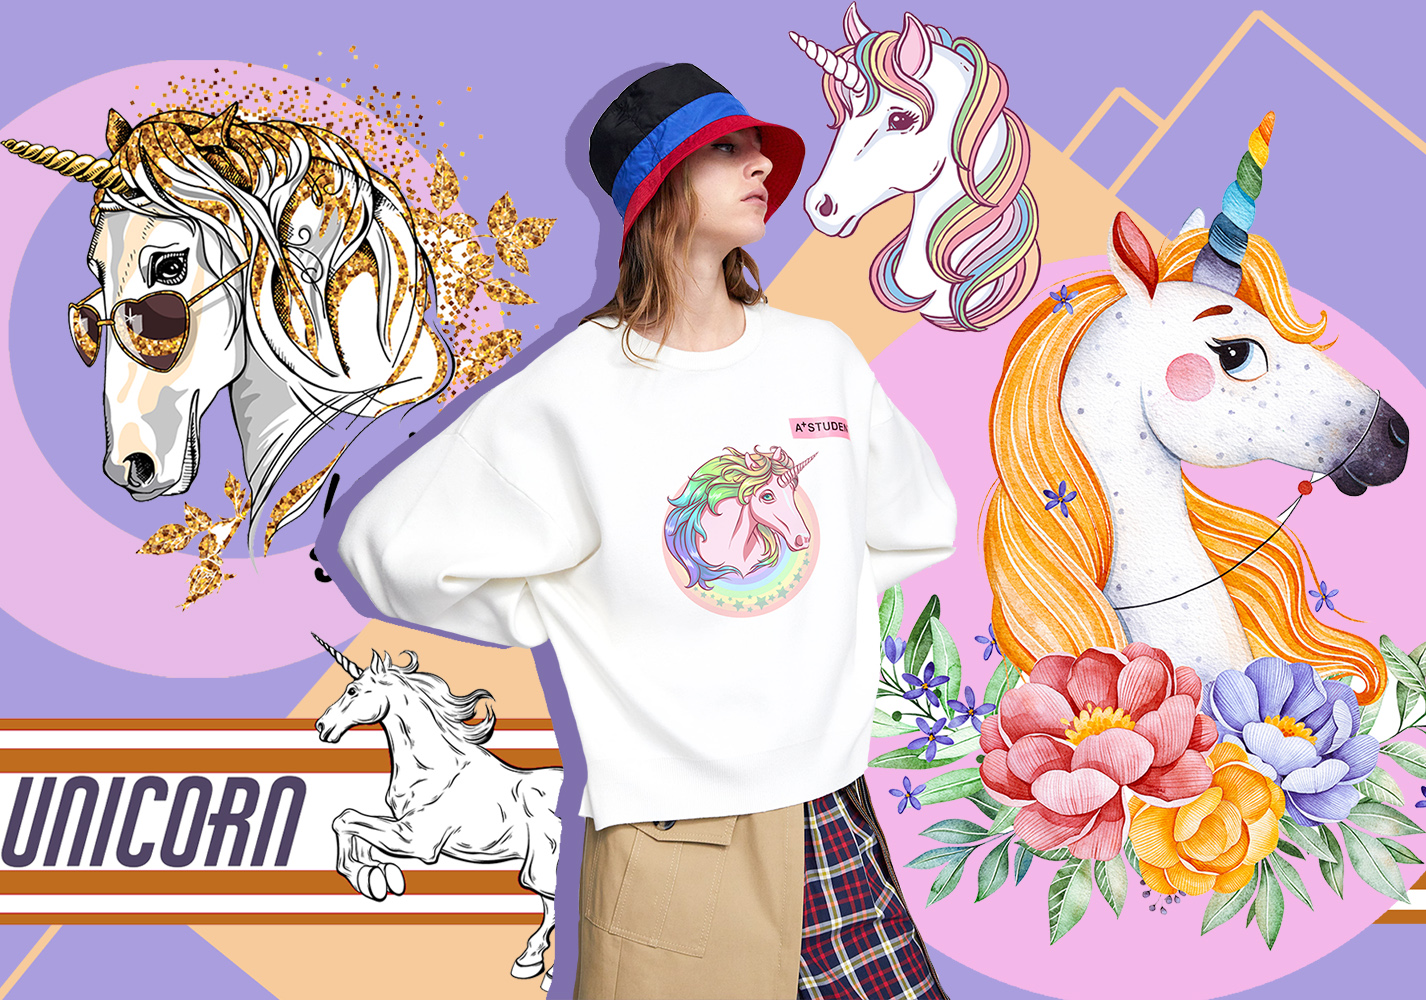 Fantastic Unicorn -- 2020 S/S Pattern Trend for Womenswear